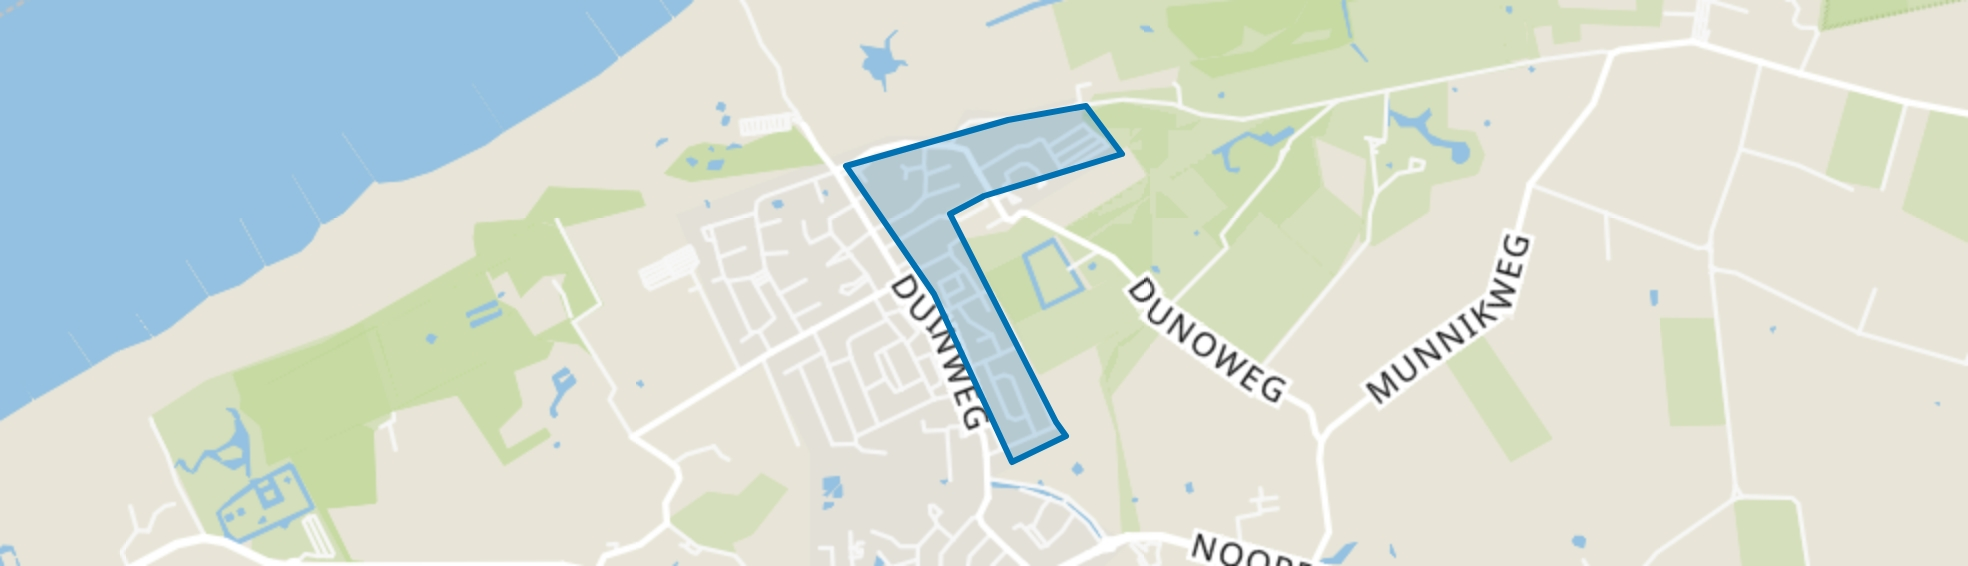 Duno, Oostkapelle map